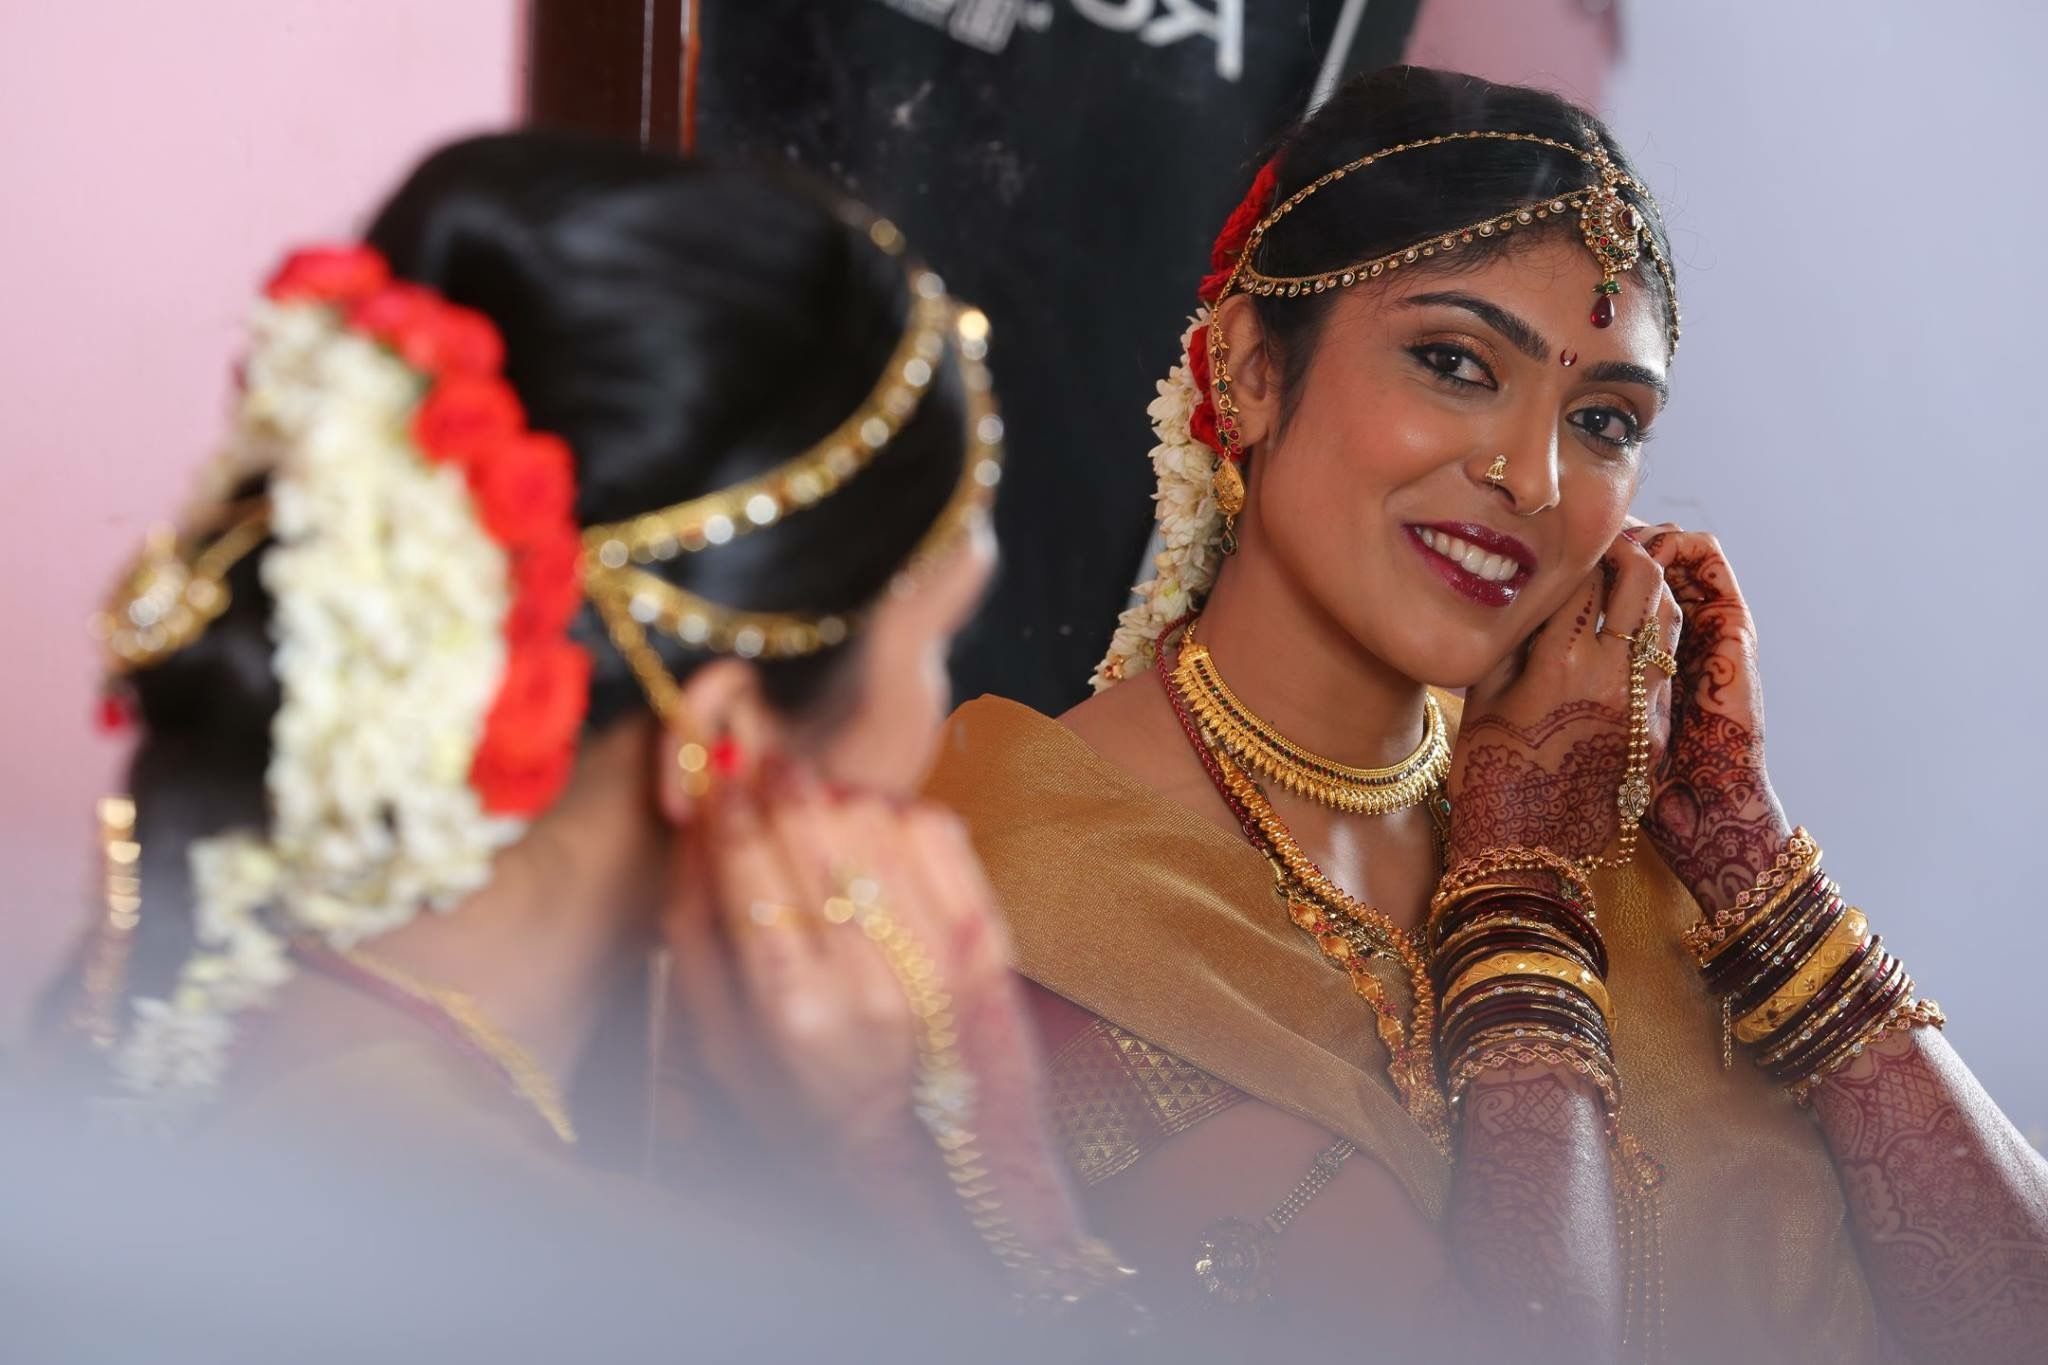 indianbride bollywood southindianbride BridalMakeup bride bridal